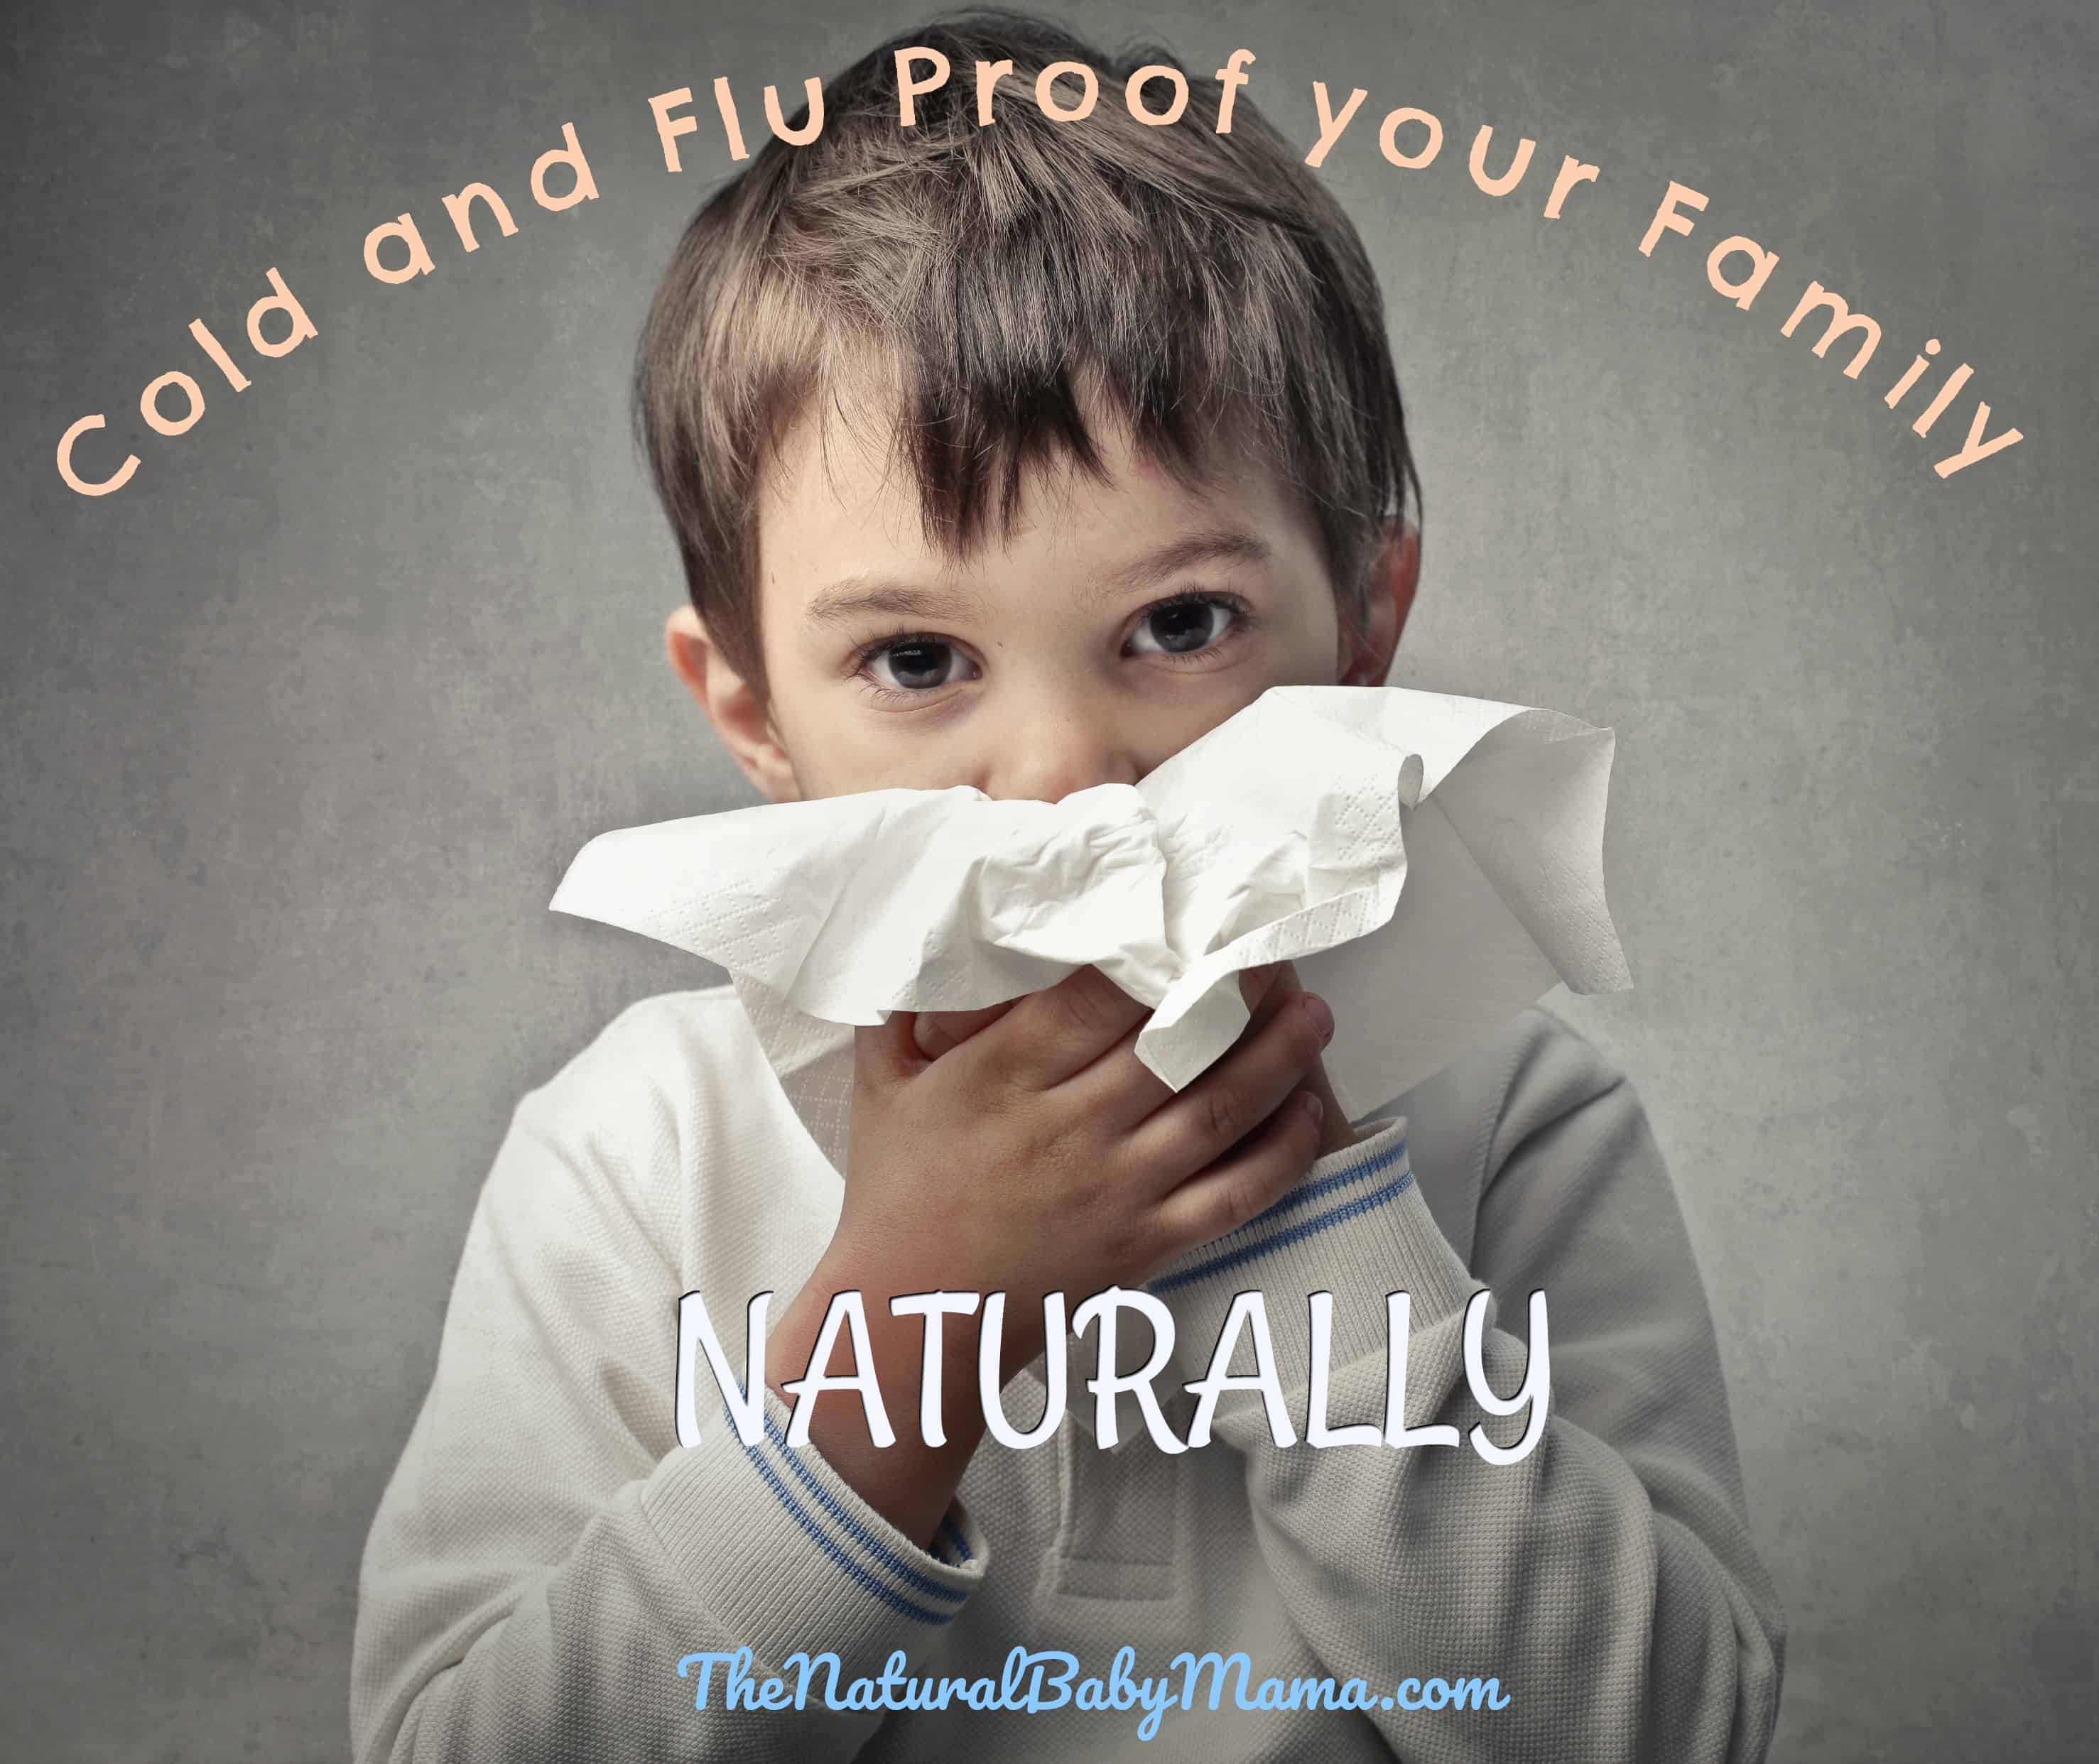 http://thenaturalbabymama.com/health-beauty/cold-and-flu-proof-your-family-naturally/